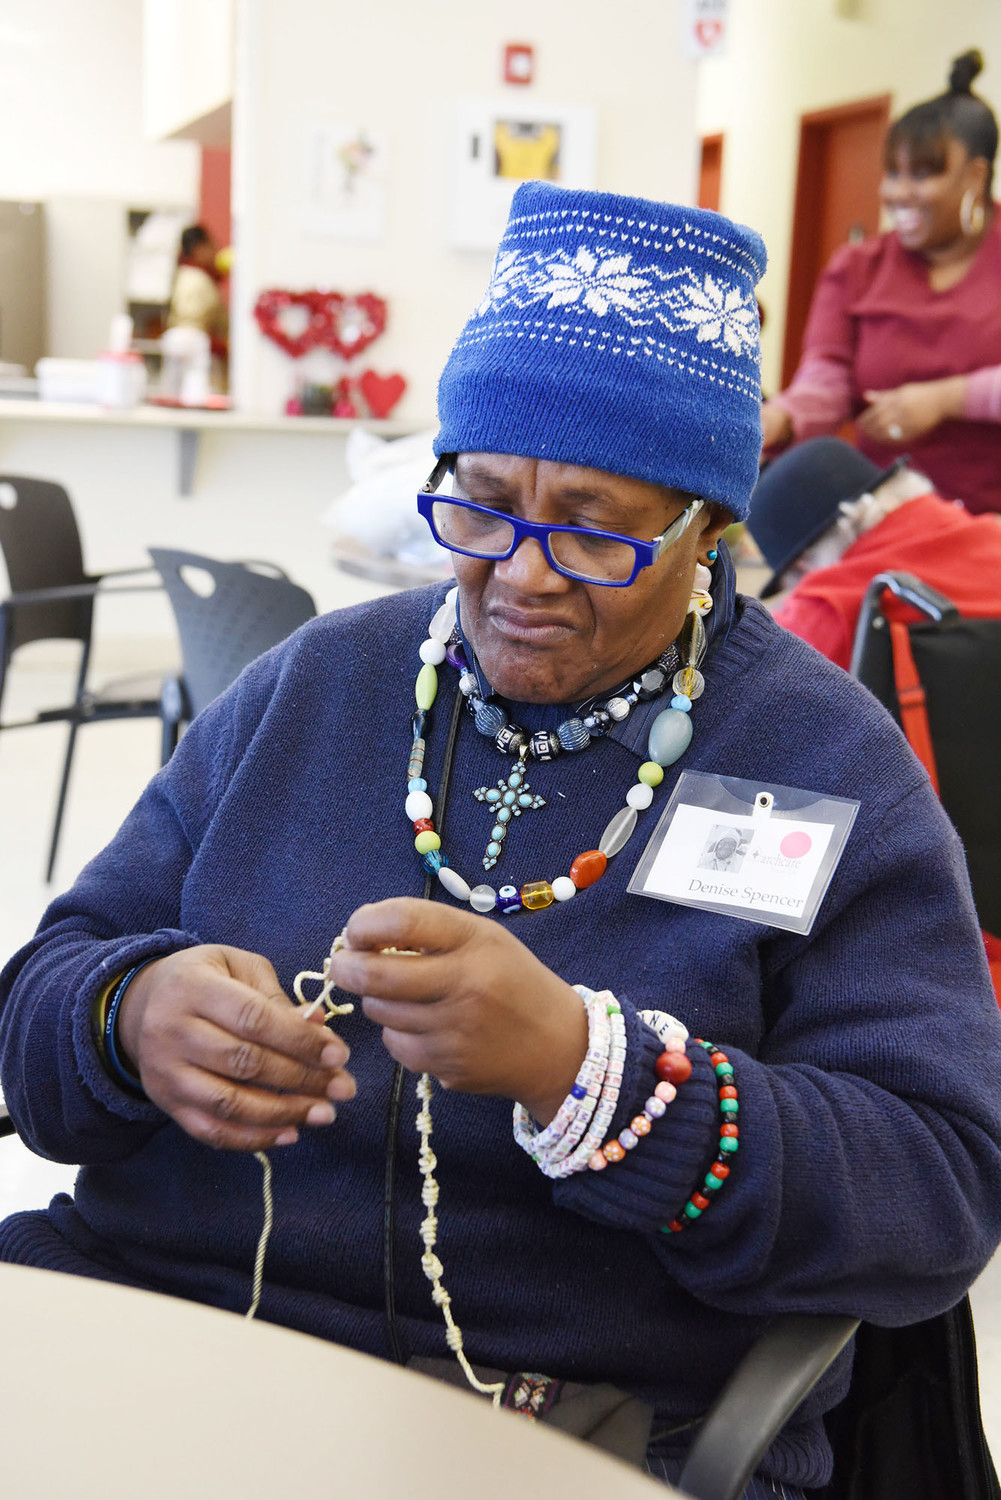 Day center participants at ArchCare on Staten Island have finished the last of 50 hand-knotted rosaries for U.S. troops. Denise Spencer works on one of the rosaries.